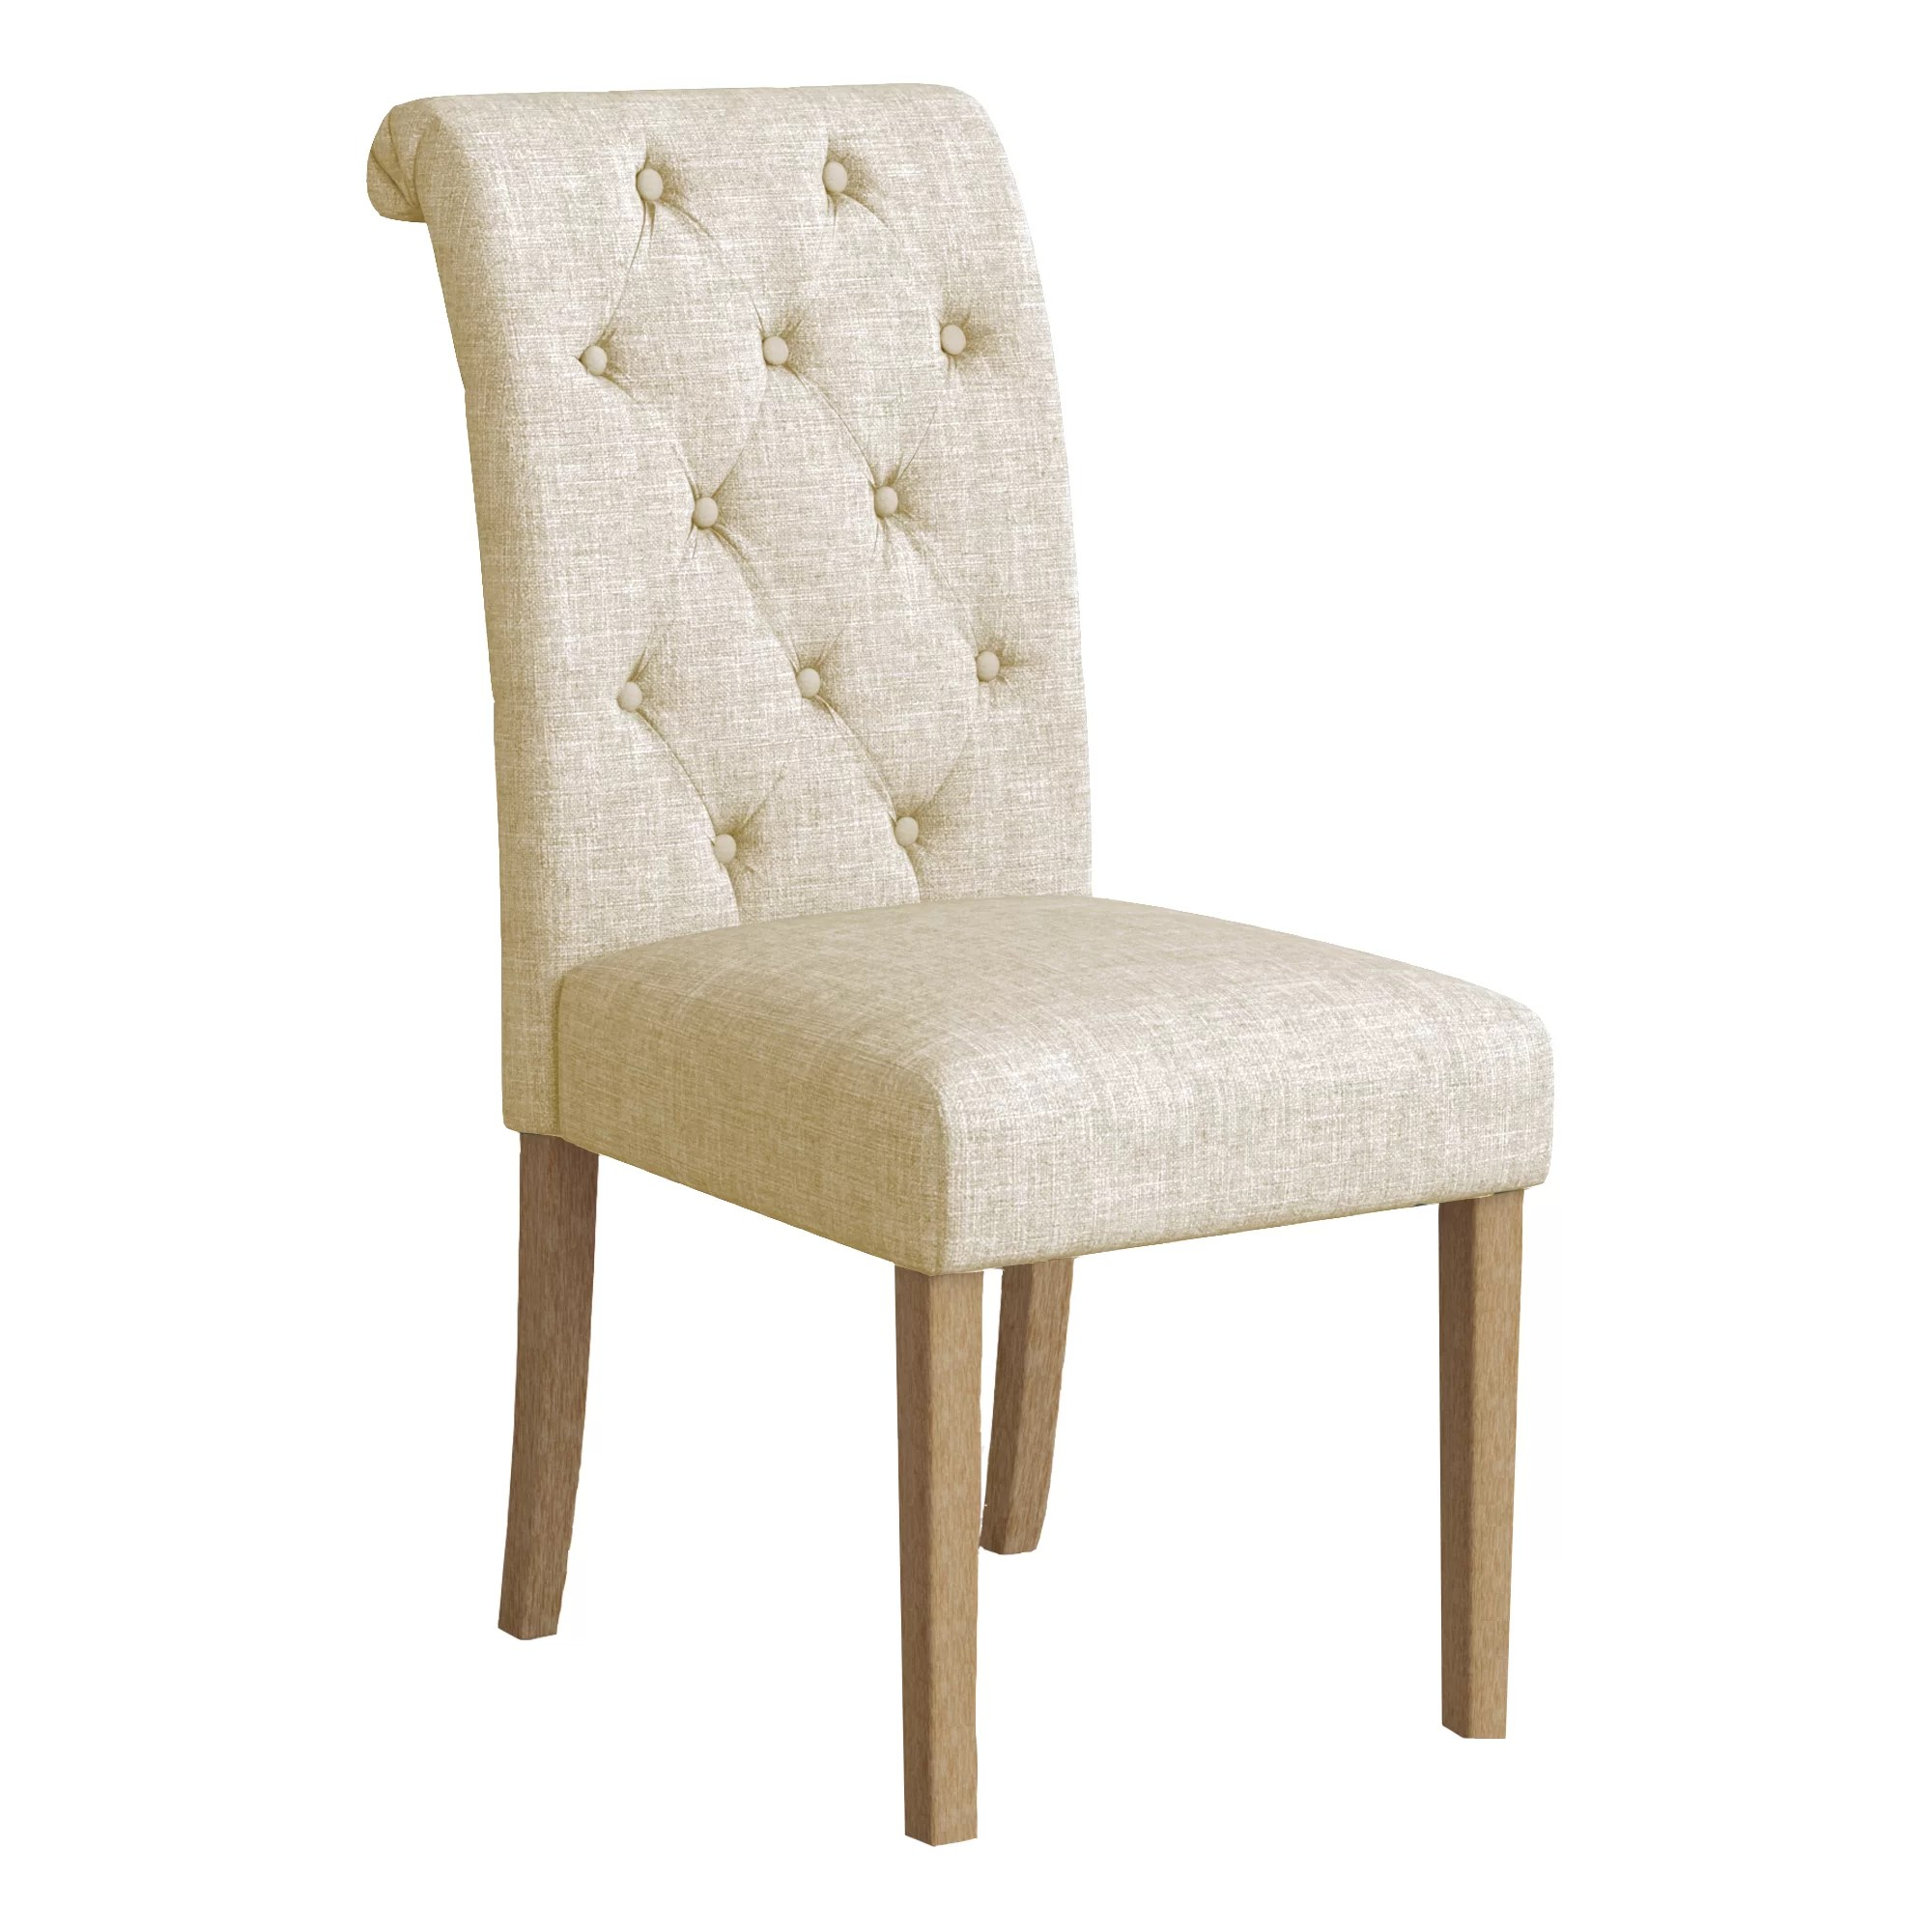 chairs images chair hammock stand uk mistana charlotte upholstered dining reviews wayfair